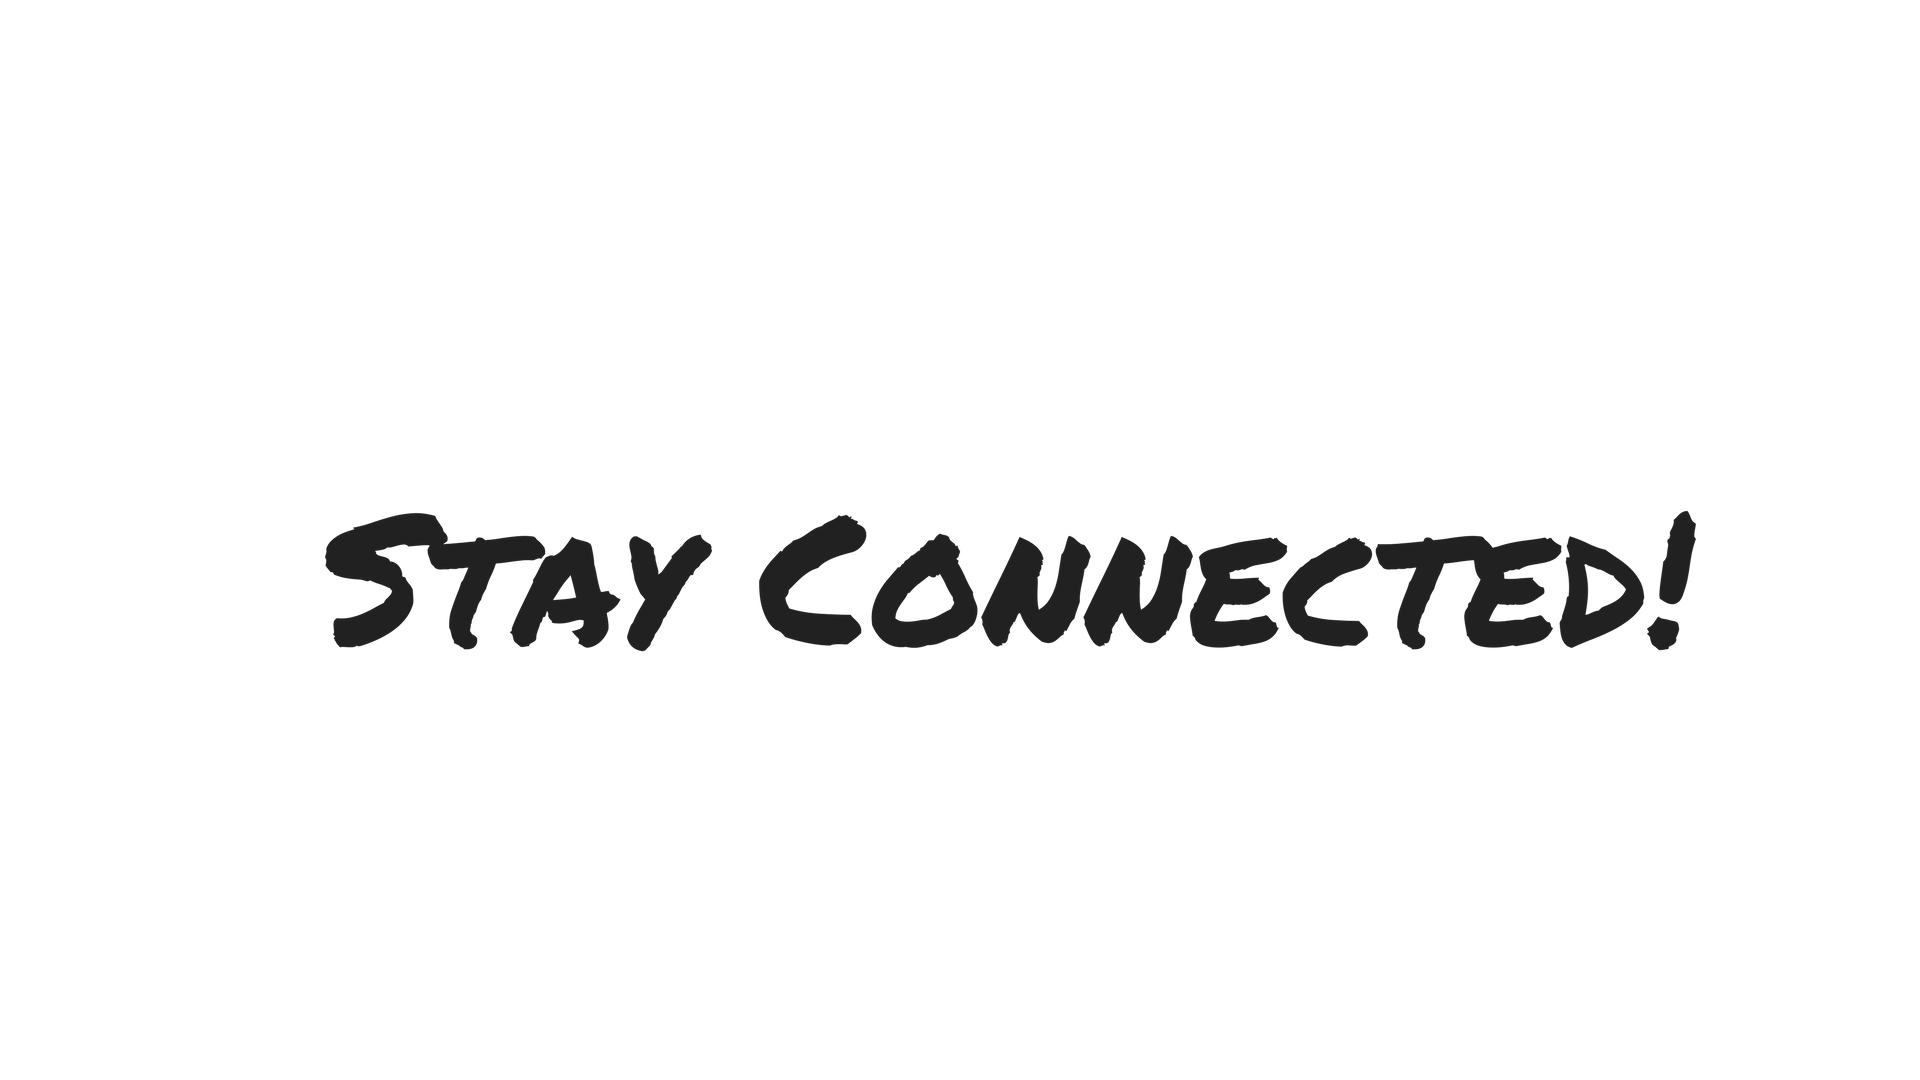 Stay Connected!.png